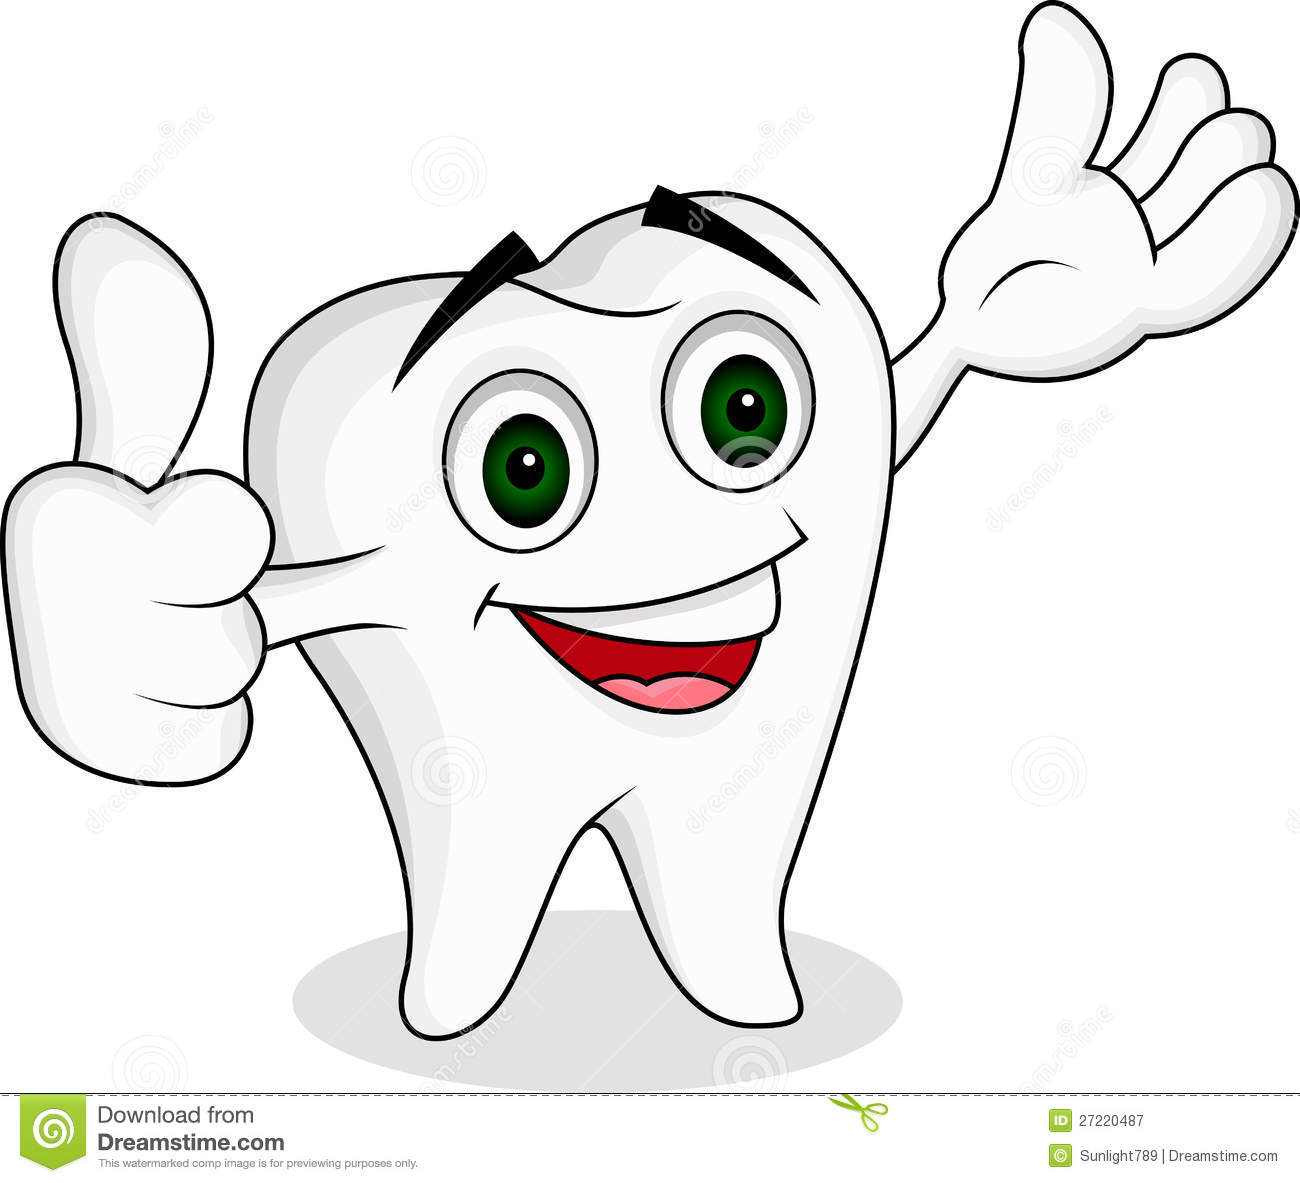 1 Toothed Cartoon Characters : Tooth cartoon character stock illustration